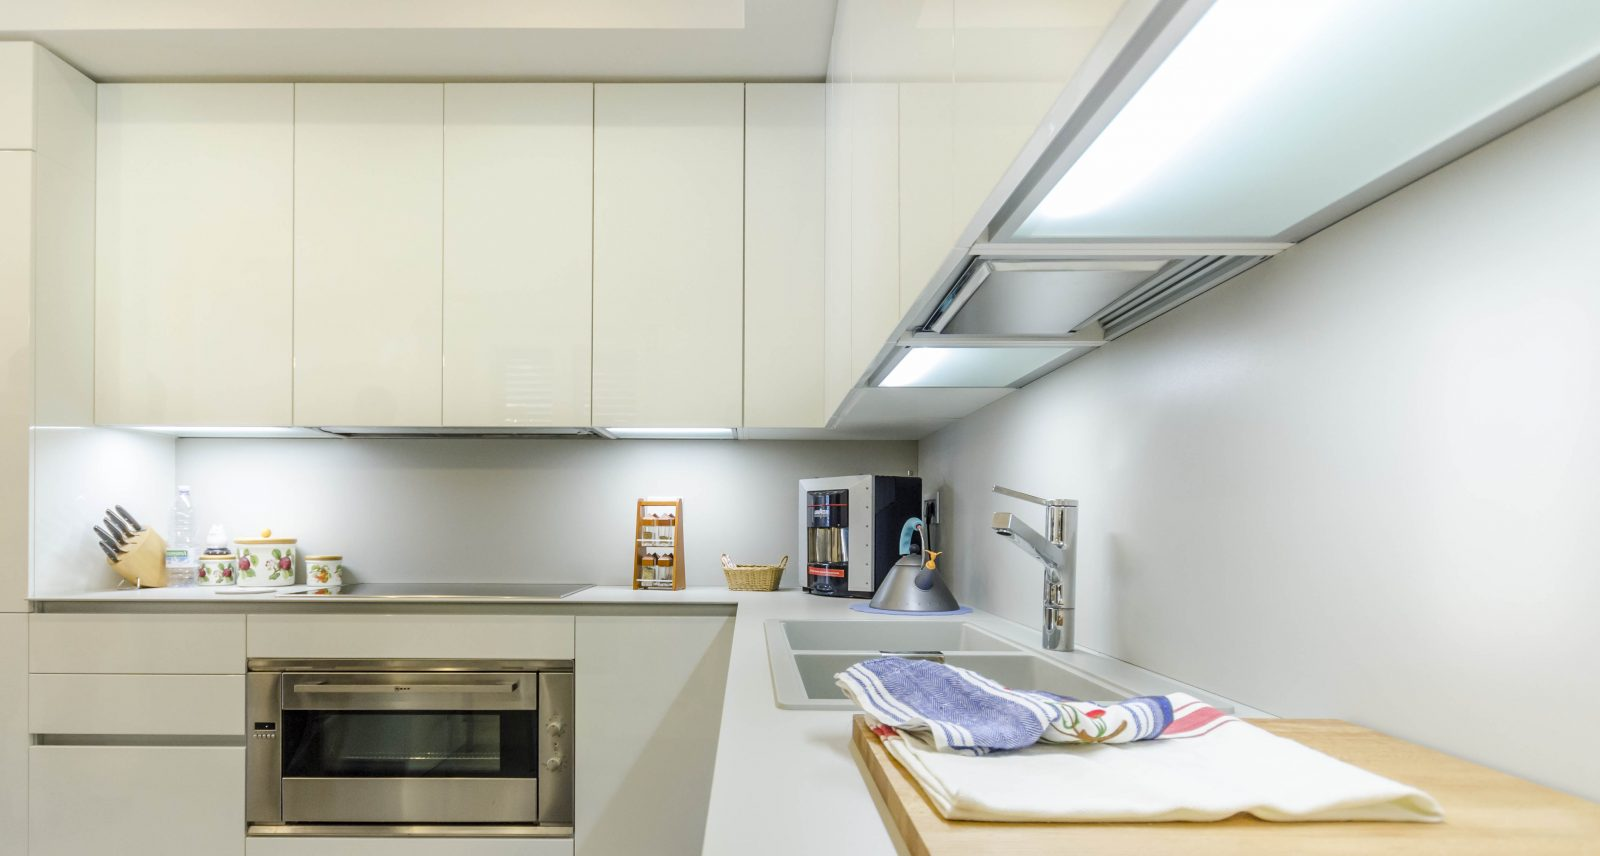 Barre LED per cucine